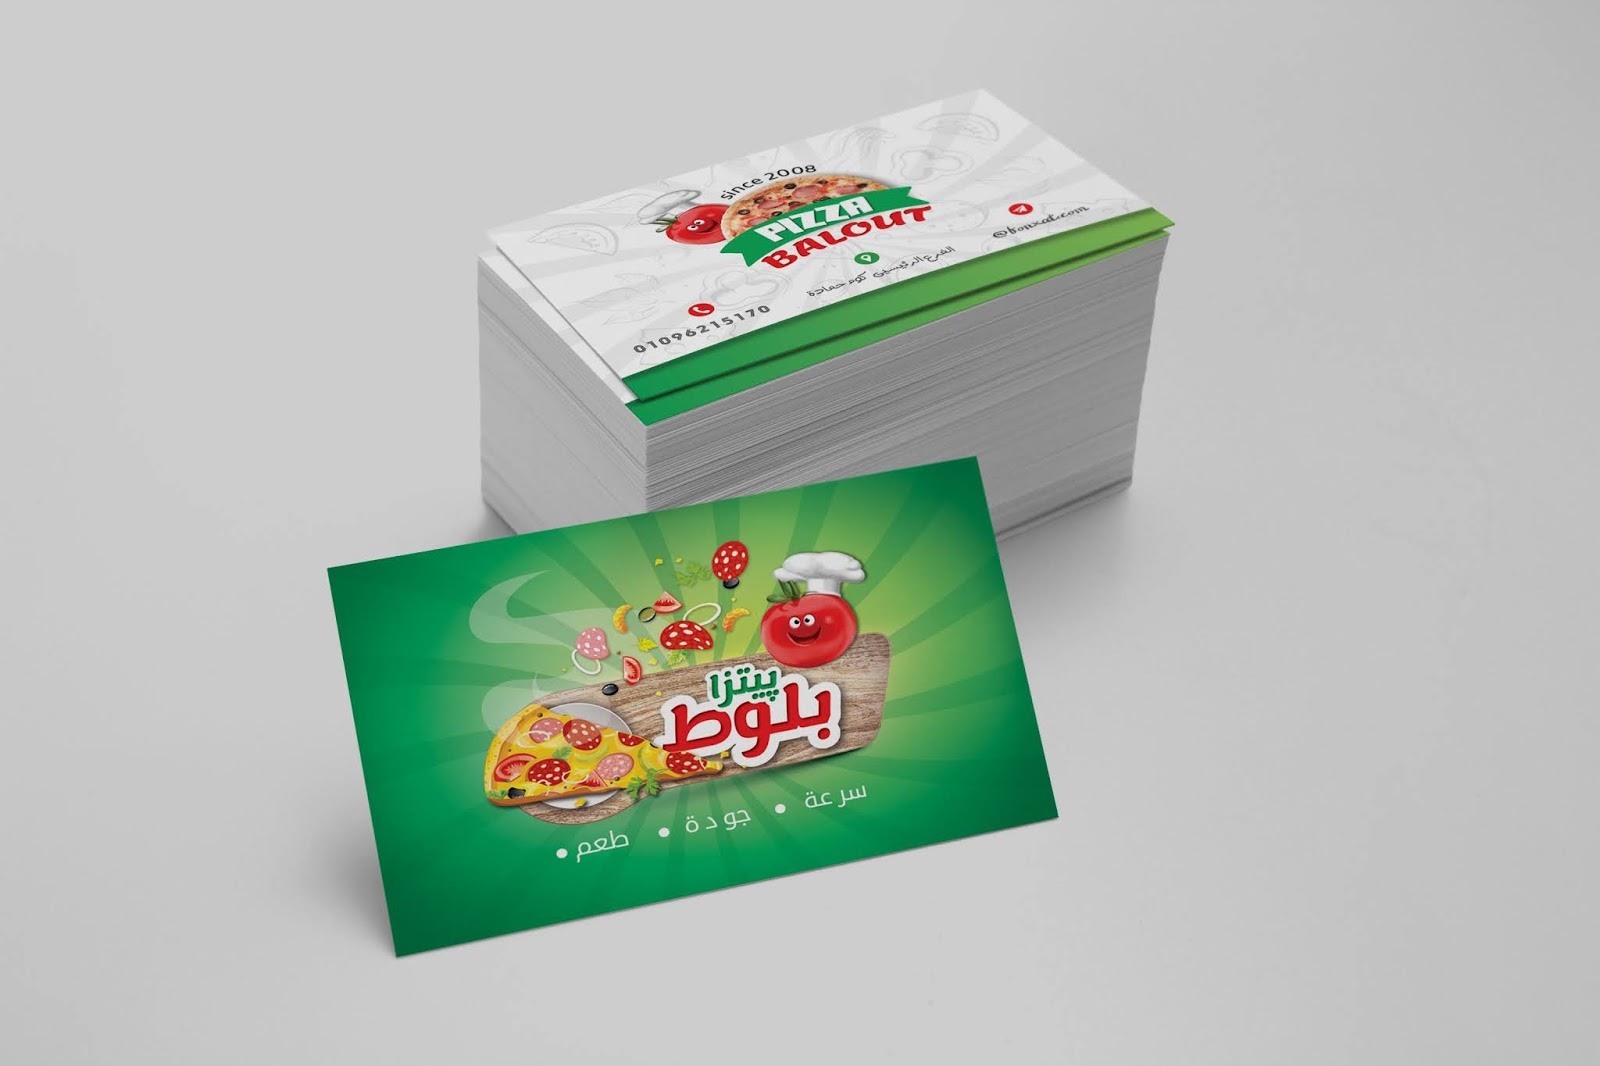 A personal card or a professional business card for tikaway pizza and pie shops